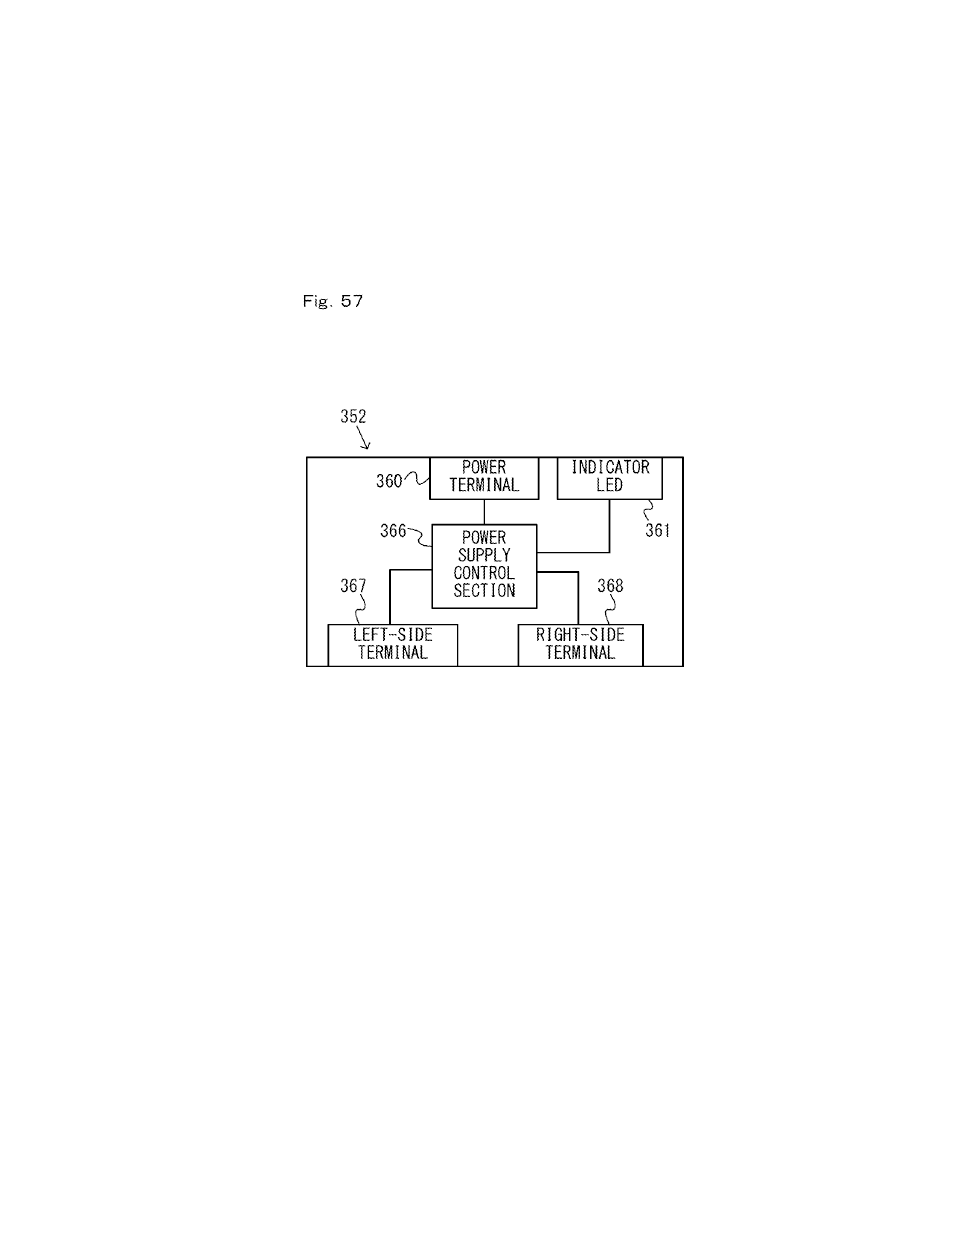 Nintendo Files A Mother Load Of Switch Patents Controller Dock Fig 4 Rear Terminals Midrange Img